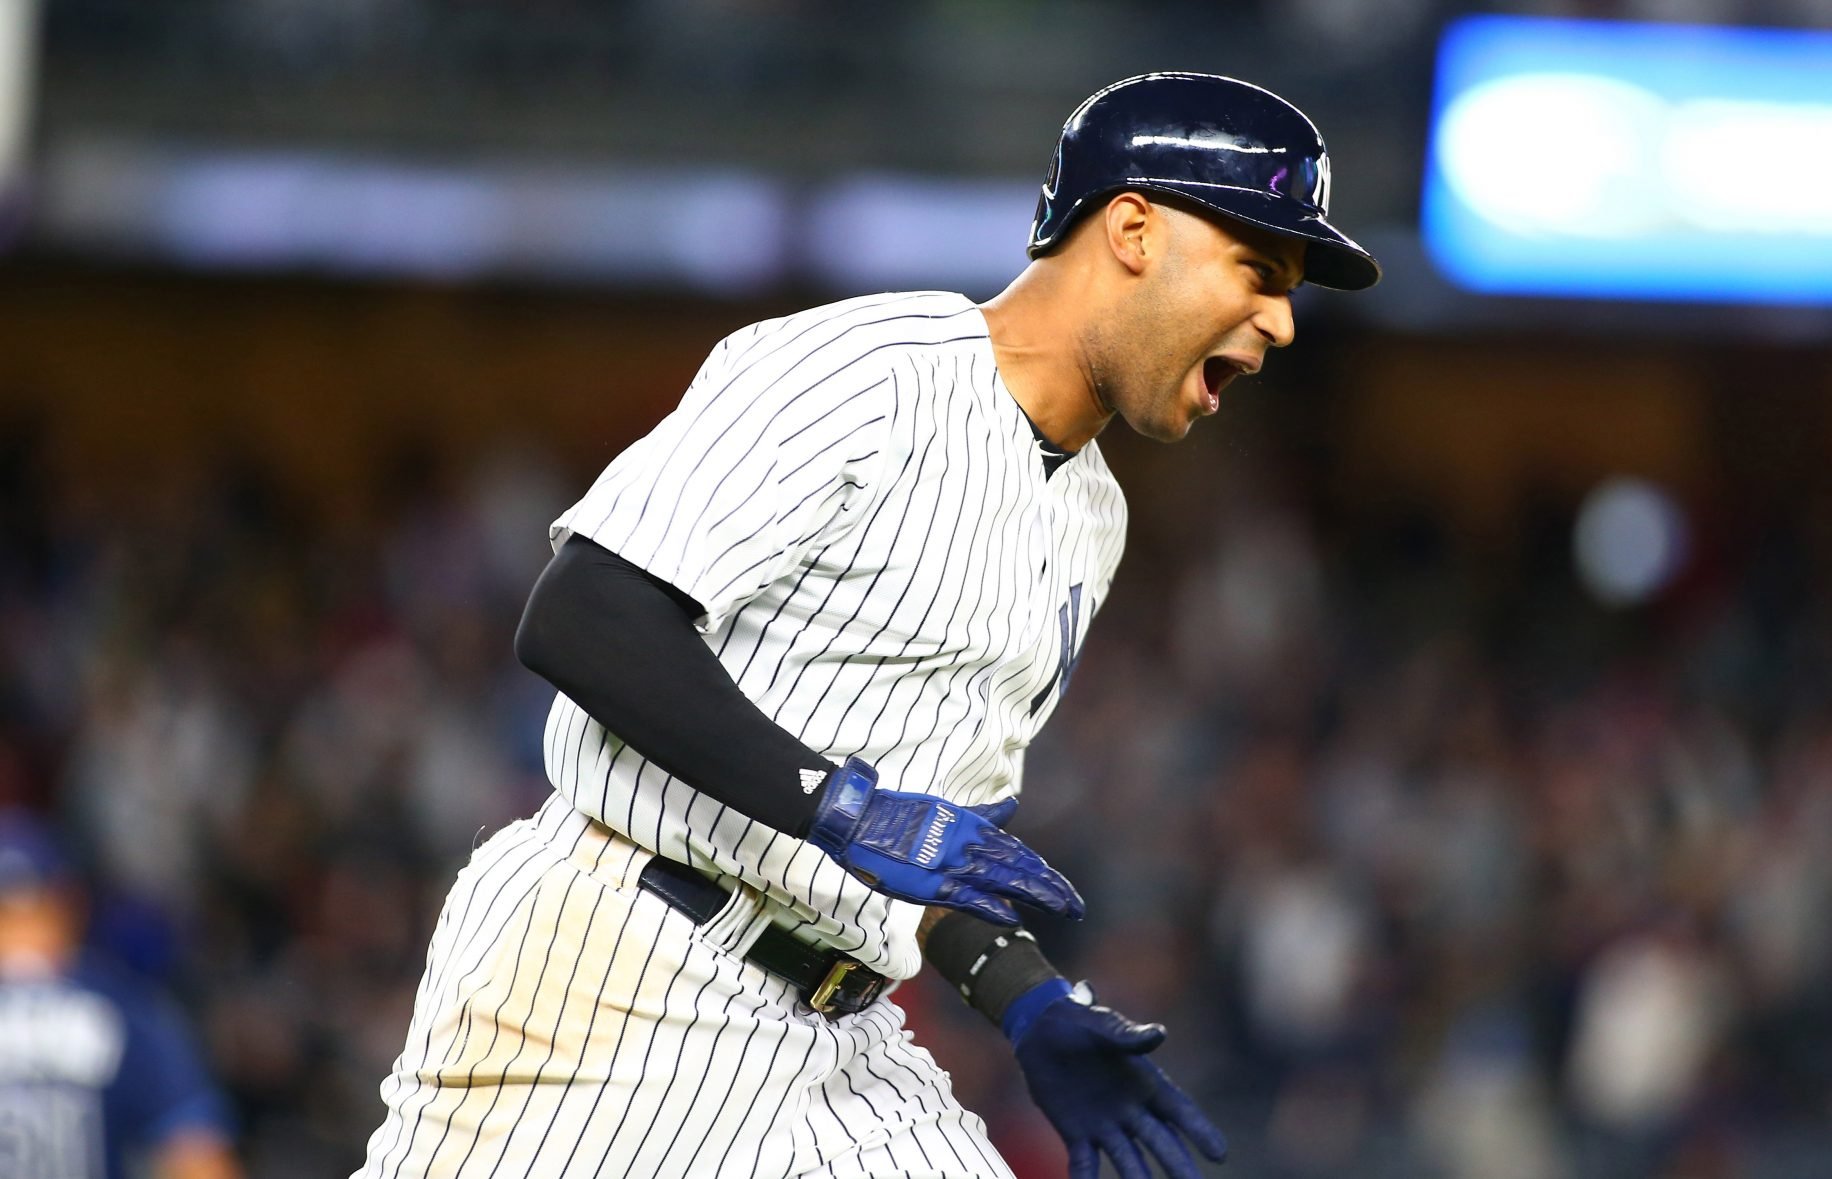 Aaron Hicks Powers The New York Yankees To Series Sweep (Highlights)